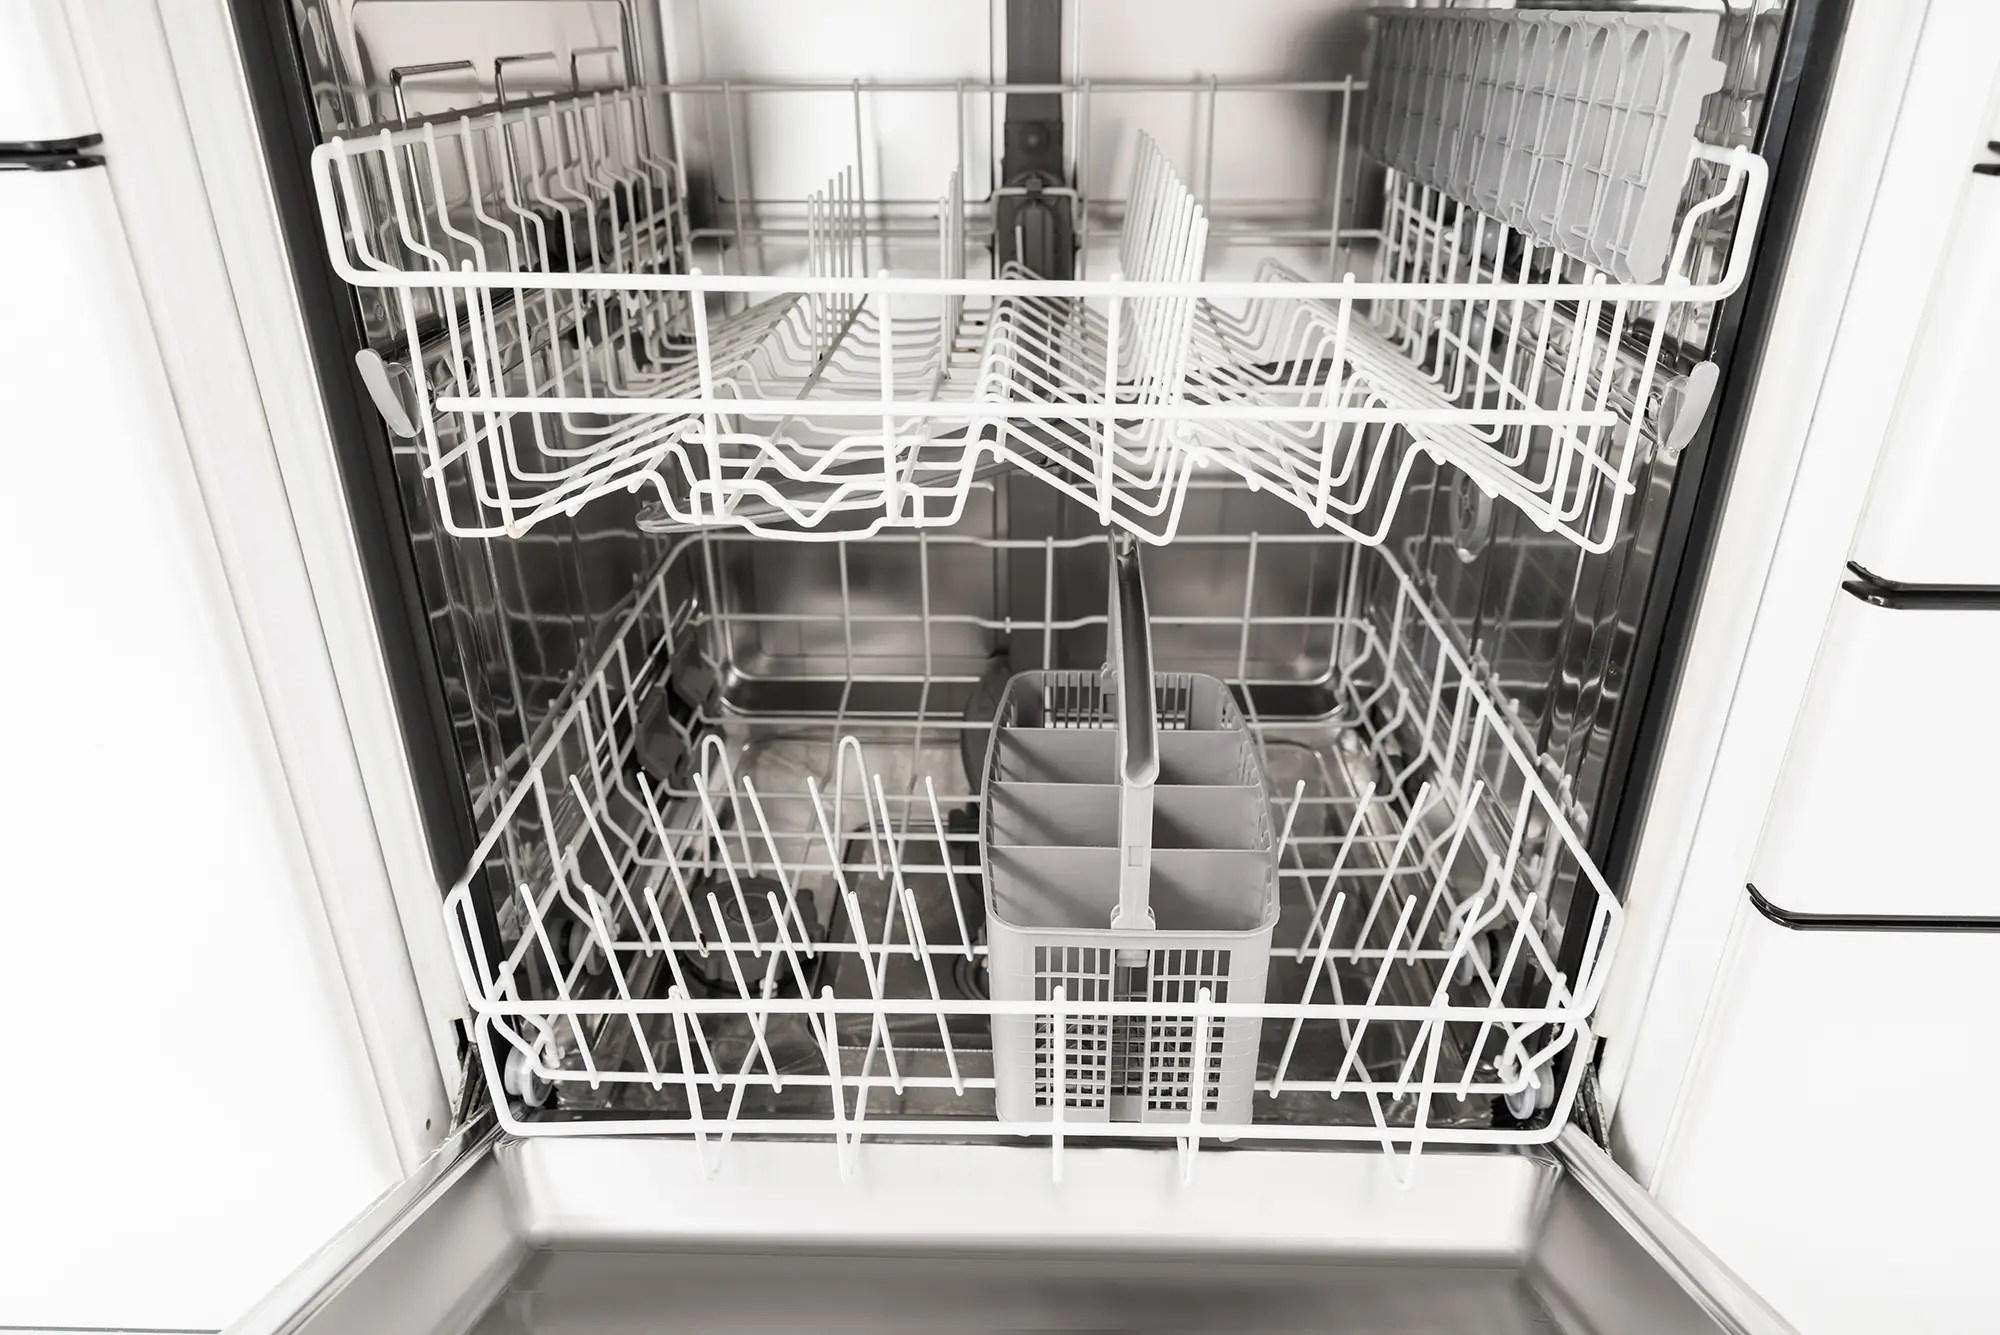 Dishwasher Draining Issues